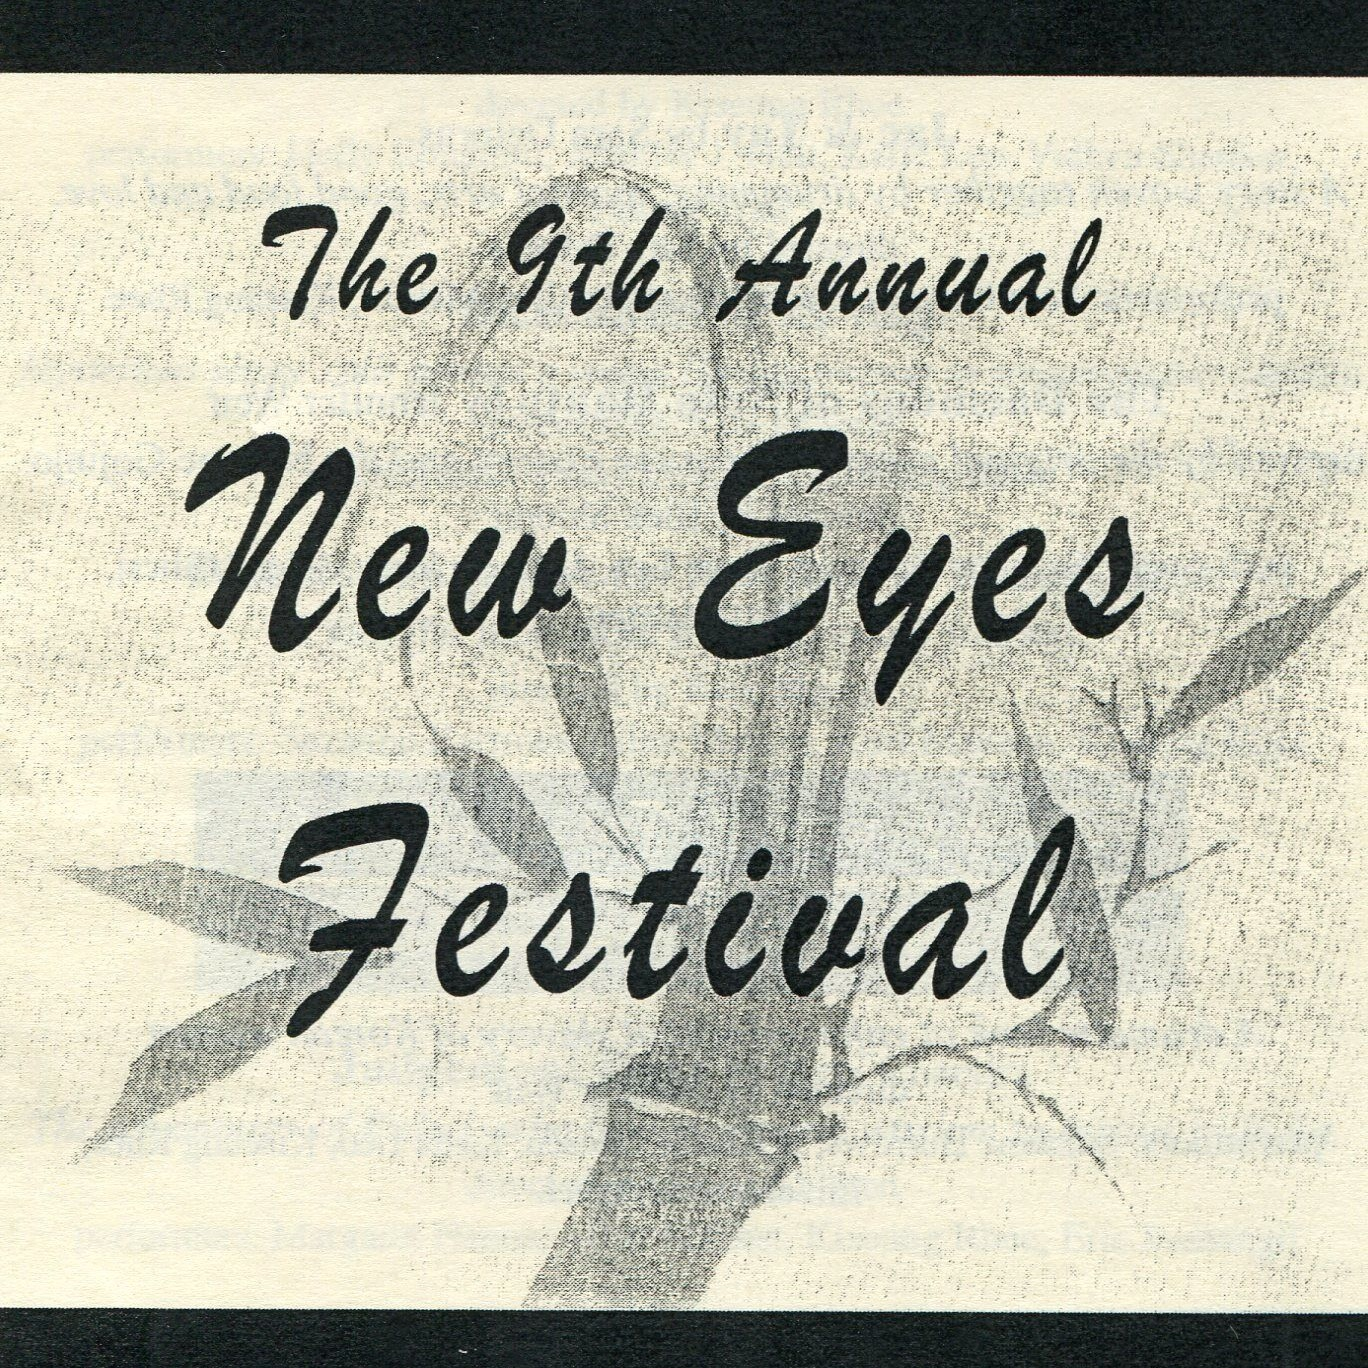 THE NEW EYES FESTIVAL 2001 - June 21st-25th, 2001